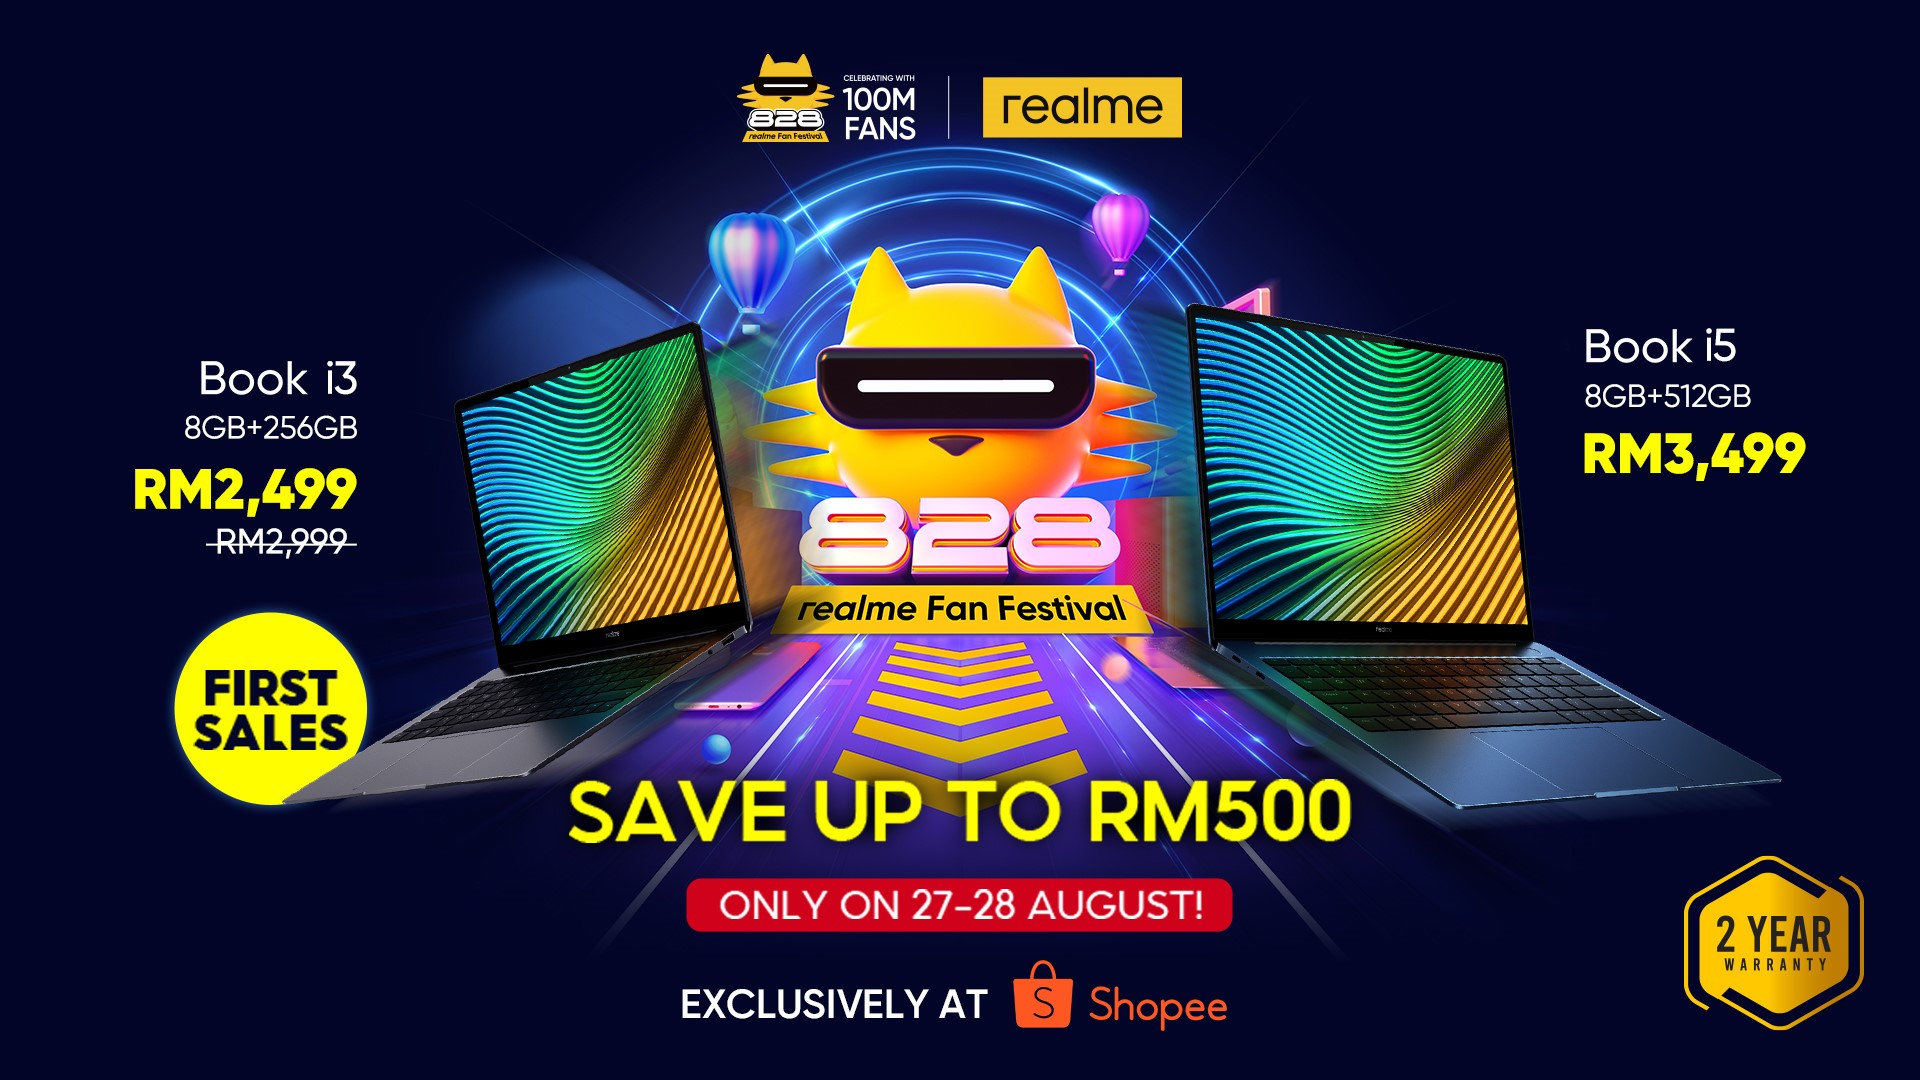 realme Malaysia Has Officially Launched Its First Laptop Real Book Today!